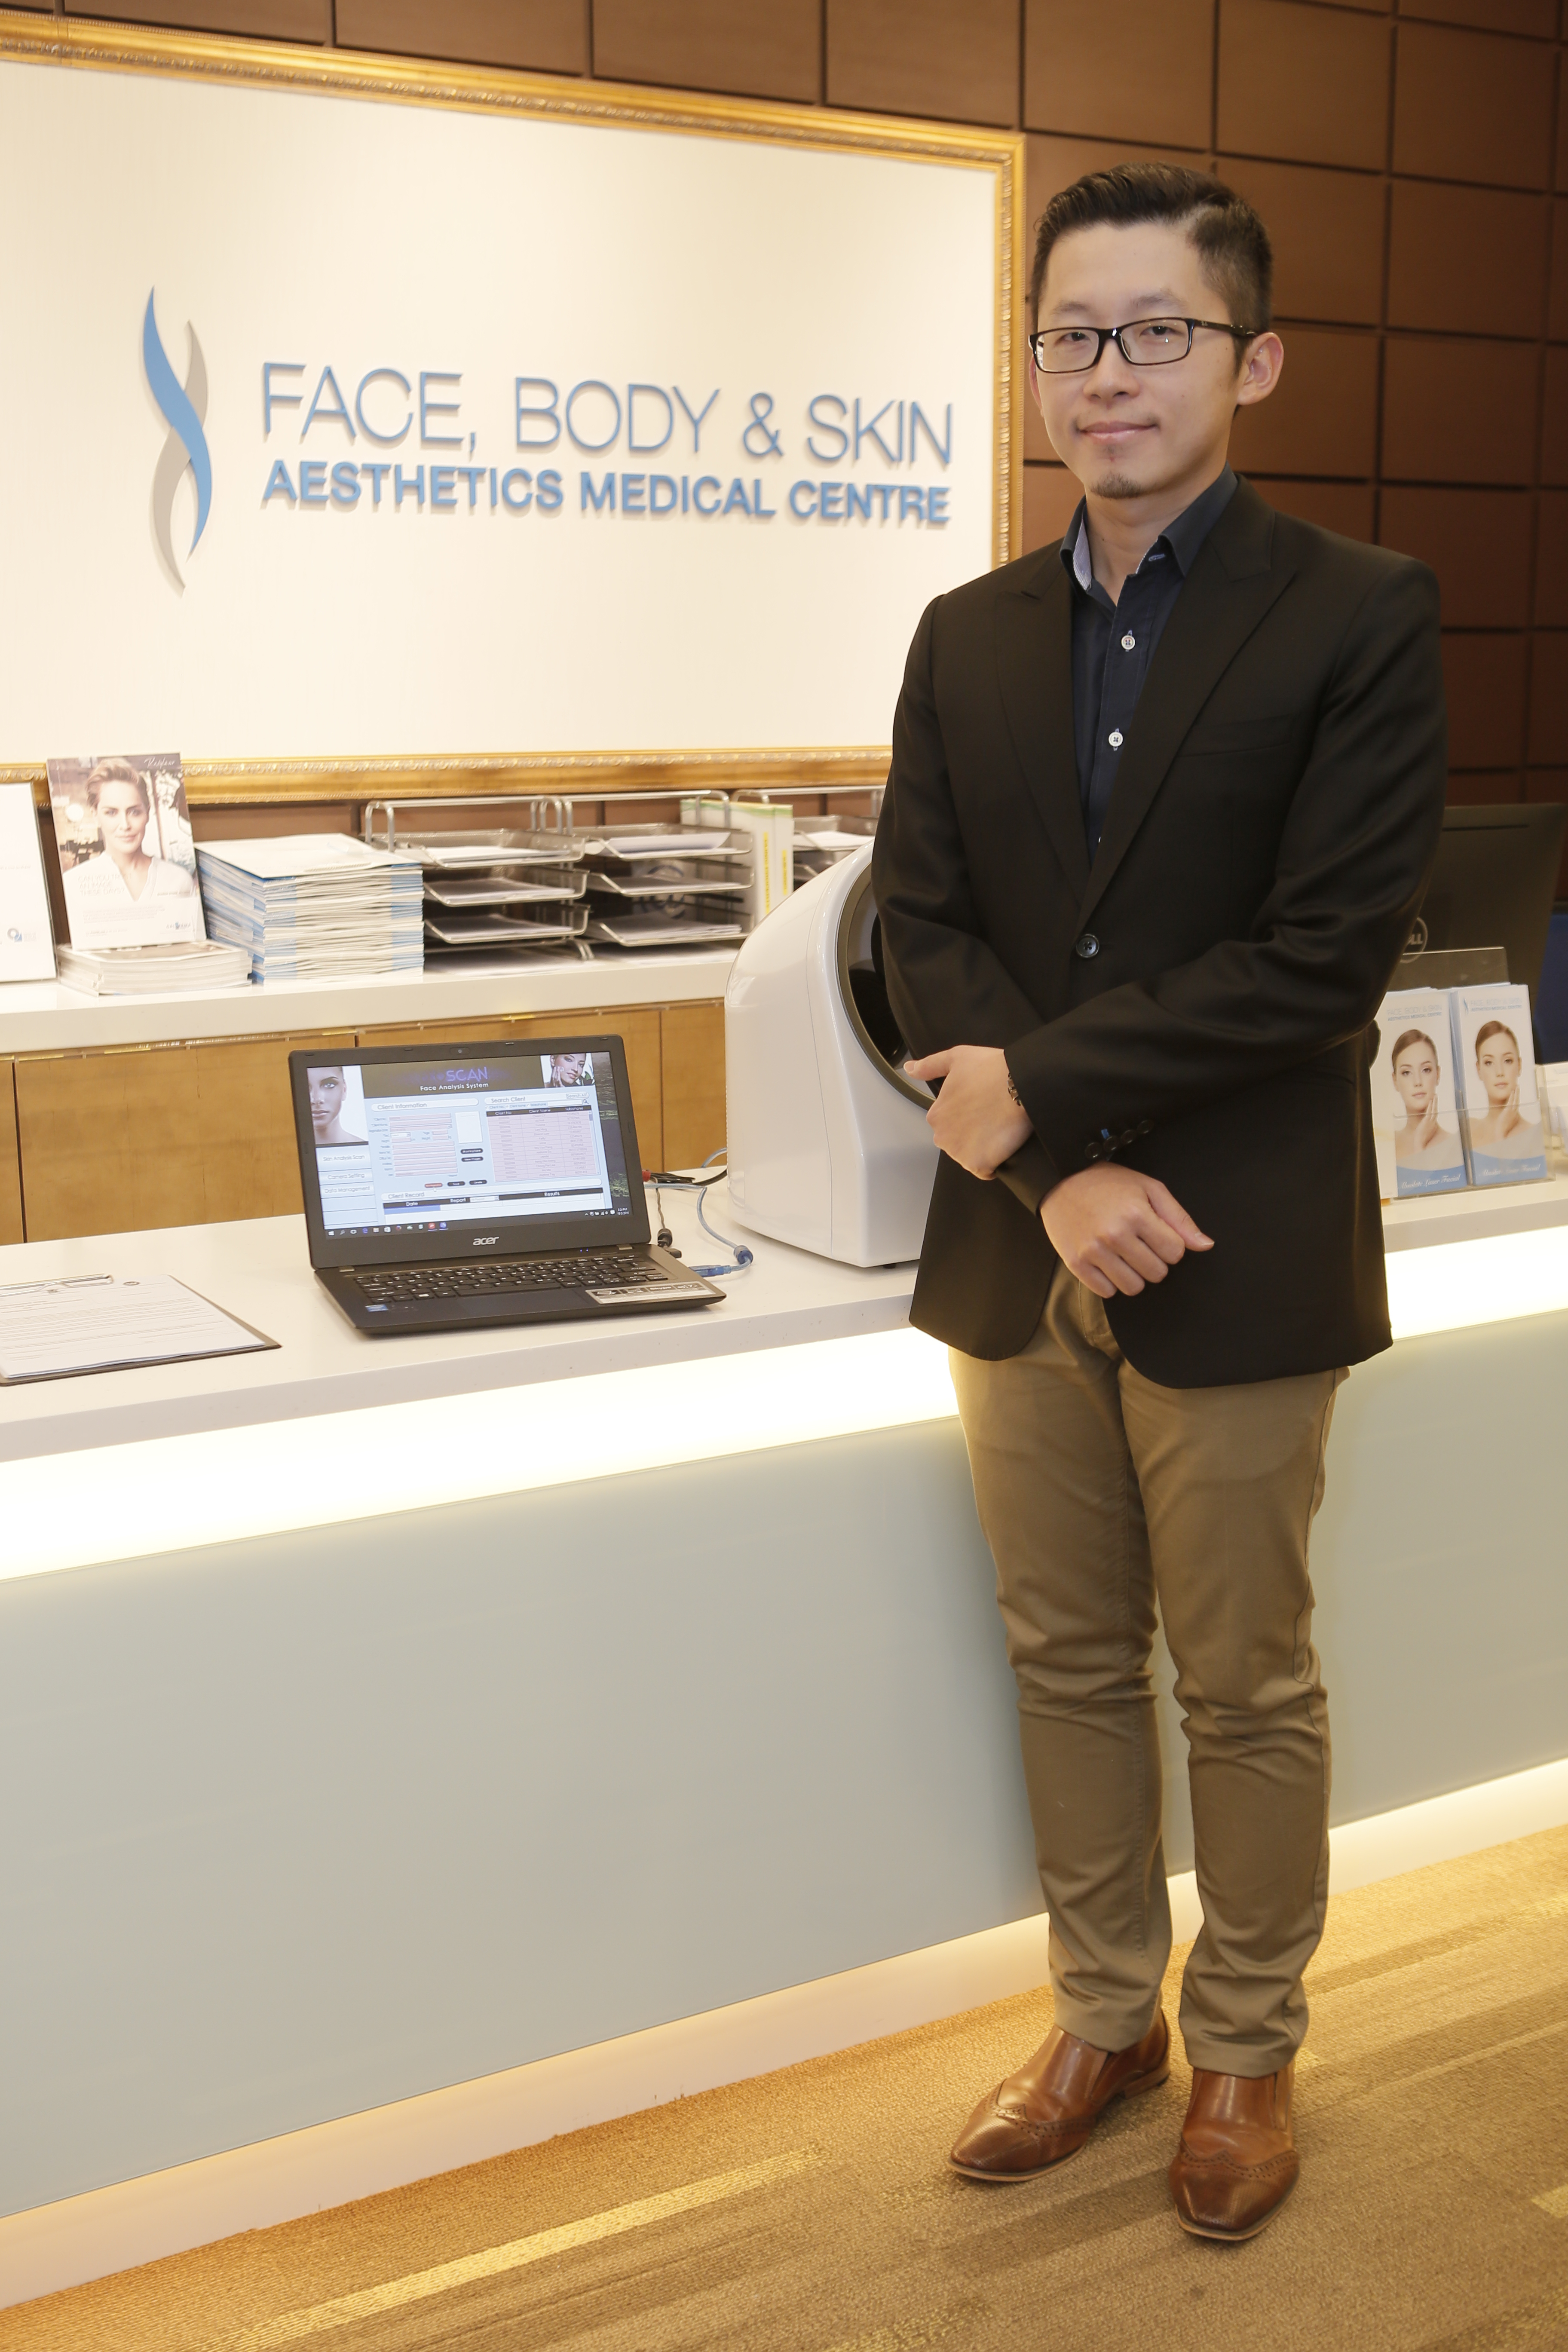 The expert is in - Dr Chiam Chiak Teng at Face, Body & Skin Aesthetics.